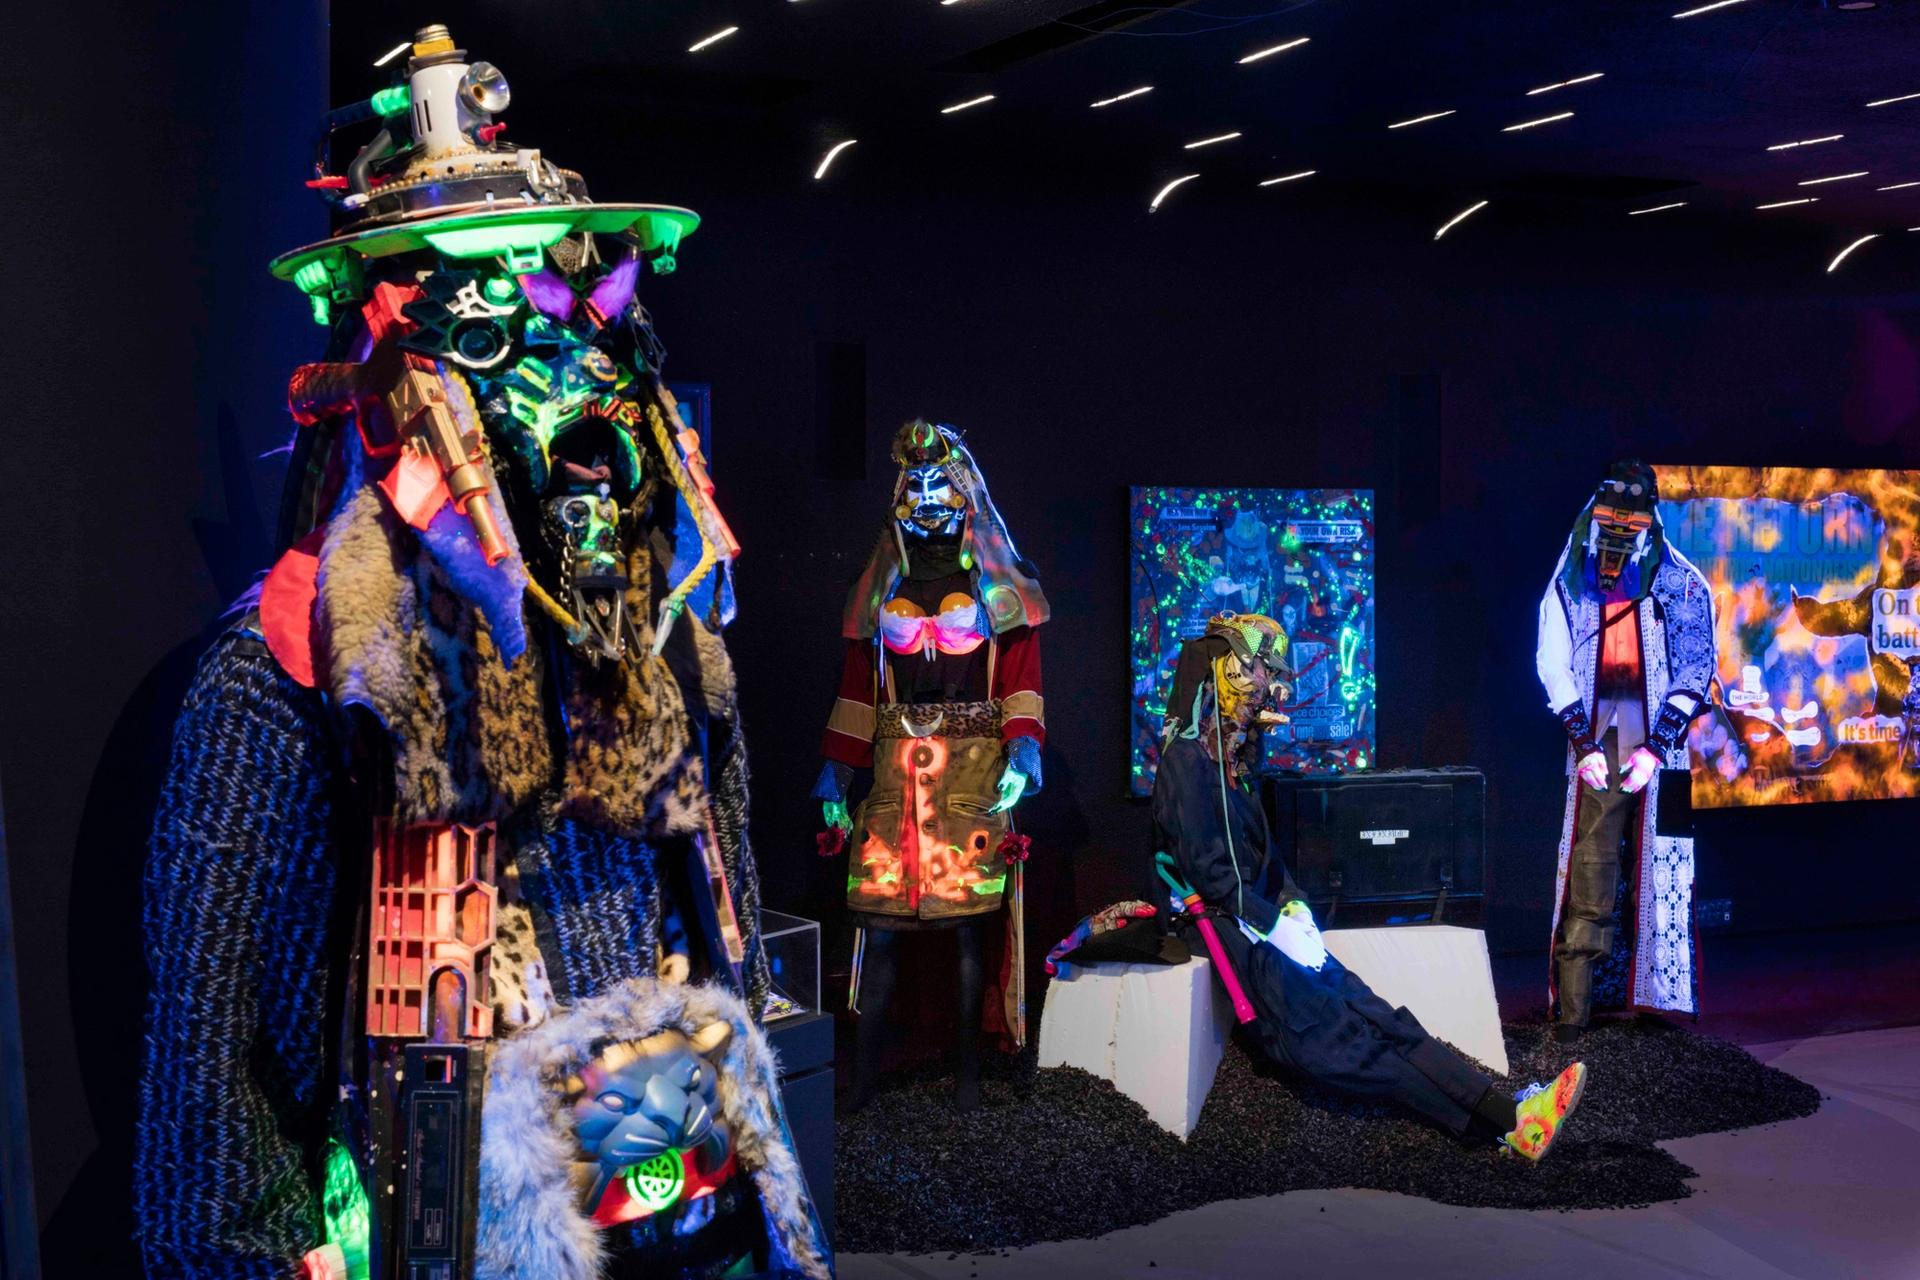 Exhibition view of Rammellzee: Racing For Thunder at Red Bull Arts New  York, showing the artist's Garbage Gods Photo by Lance  Brewer. Courtesy of Red Bull Arts New York. All work  ©2018 The Rammellzee Estate